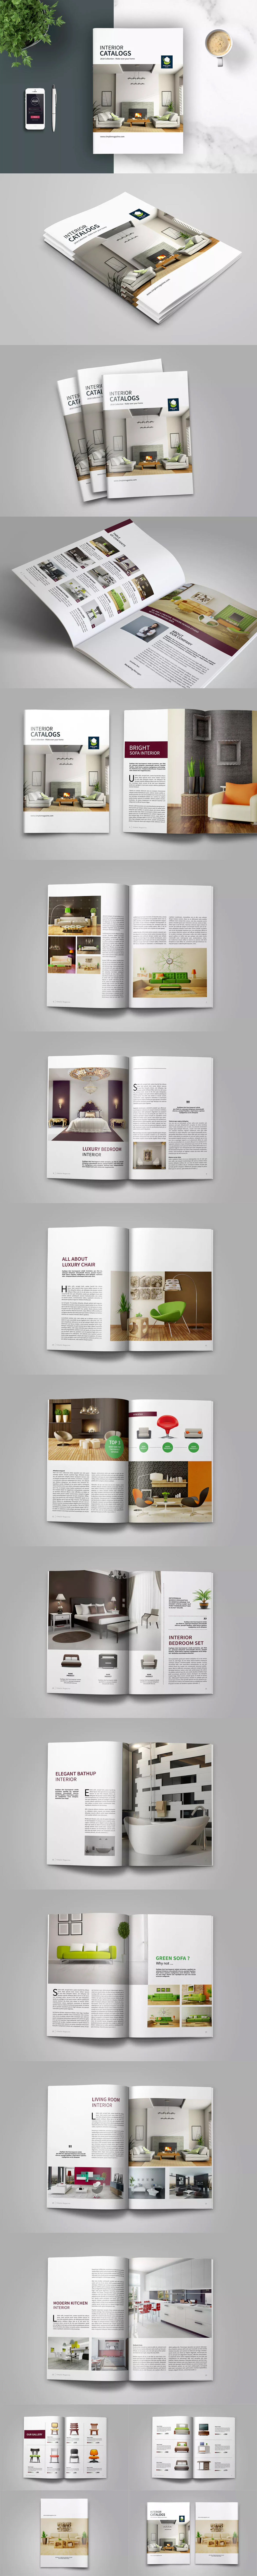 Interior Brochure / Catalogs / Magazine Template InDesign INDD - A4 ...